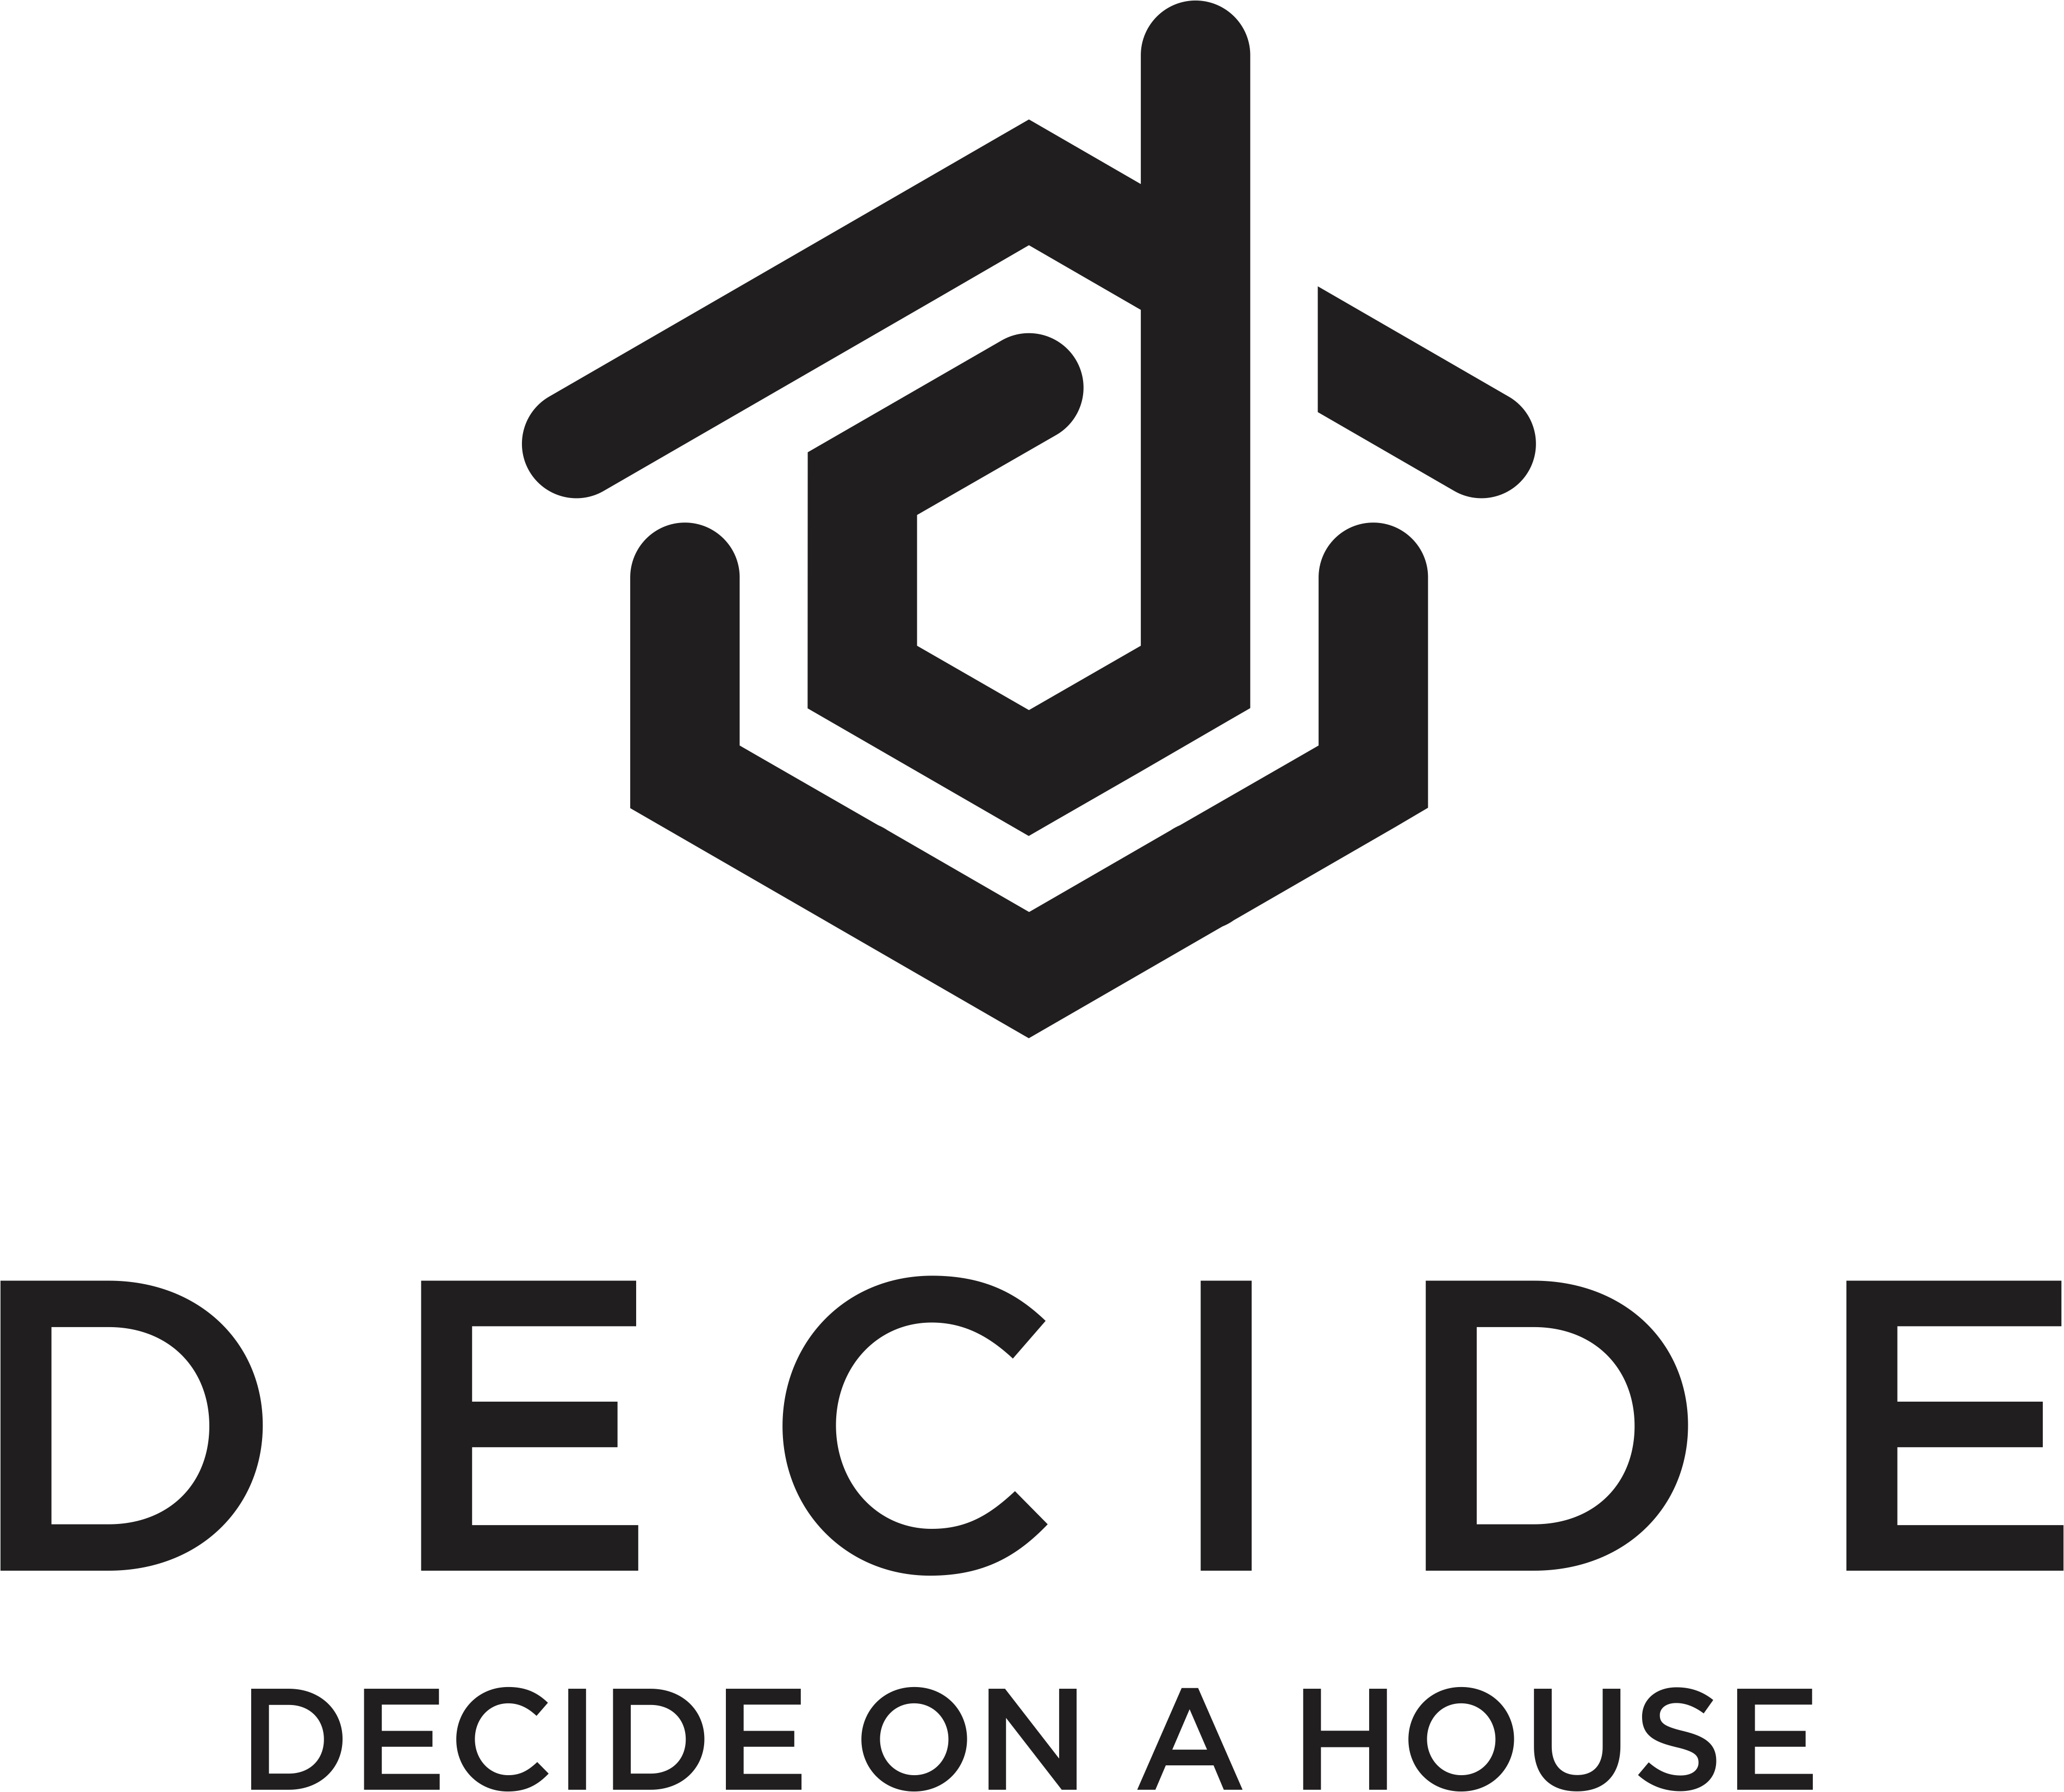 Create a logo for a house buying app